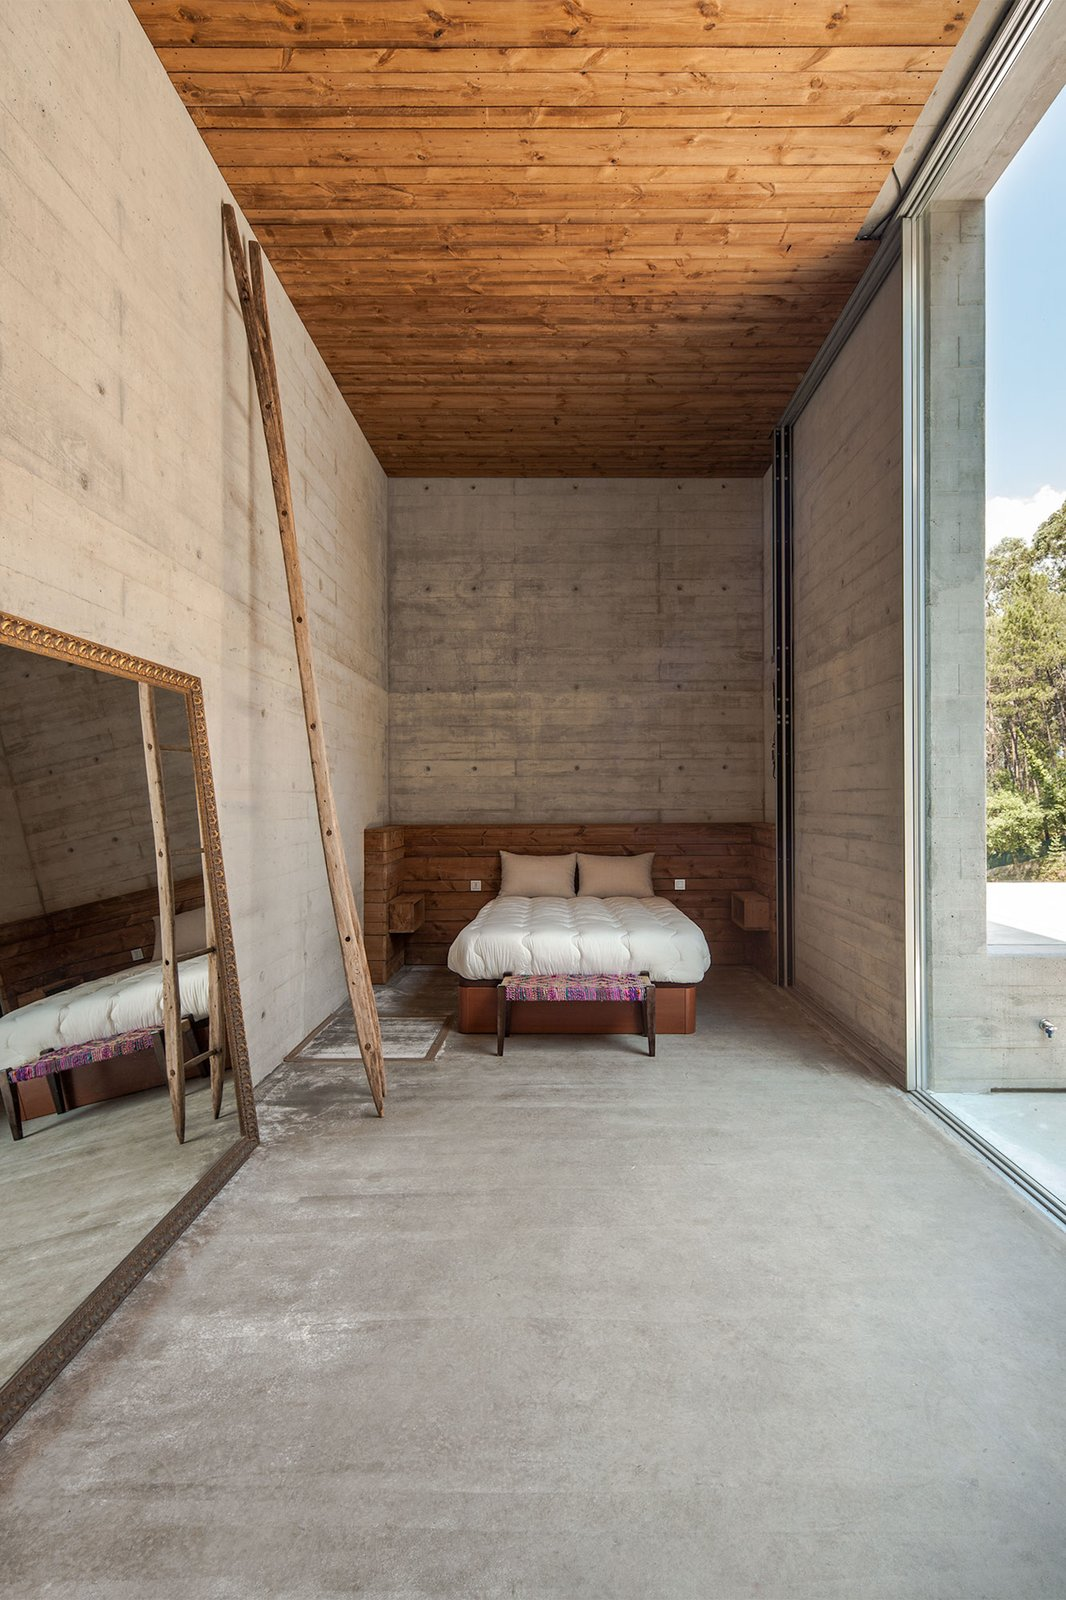 A wood-paneled ceiling and wooden furniture balances the decor of this bedroom, adding a warm touch